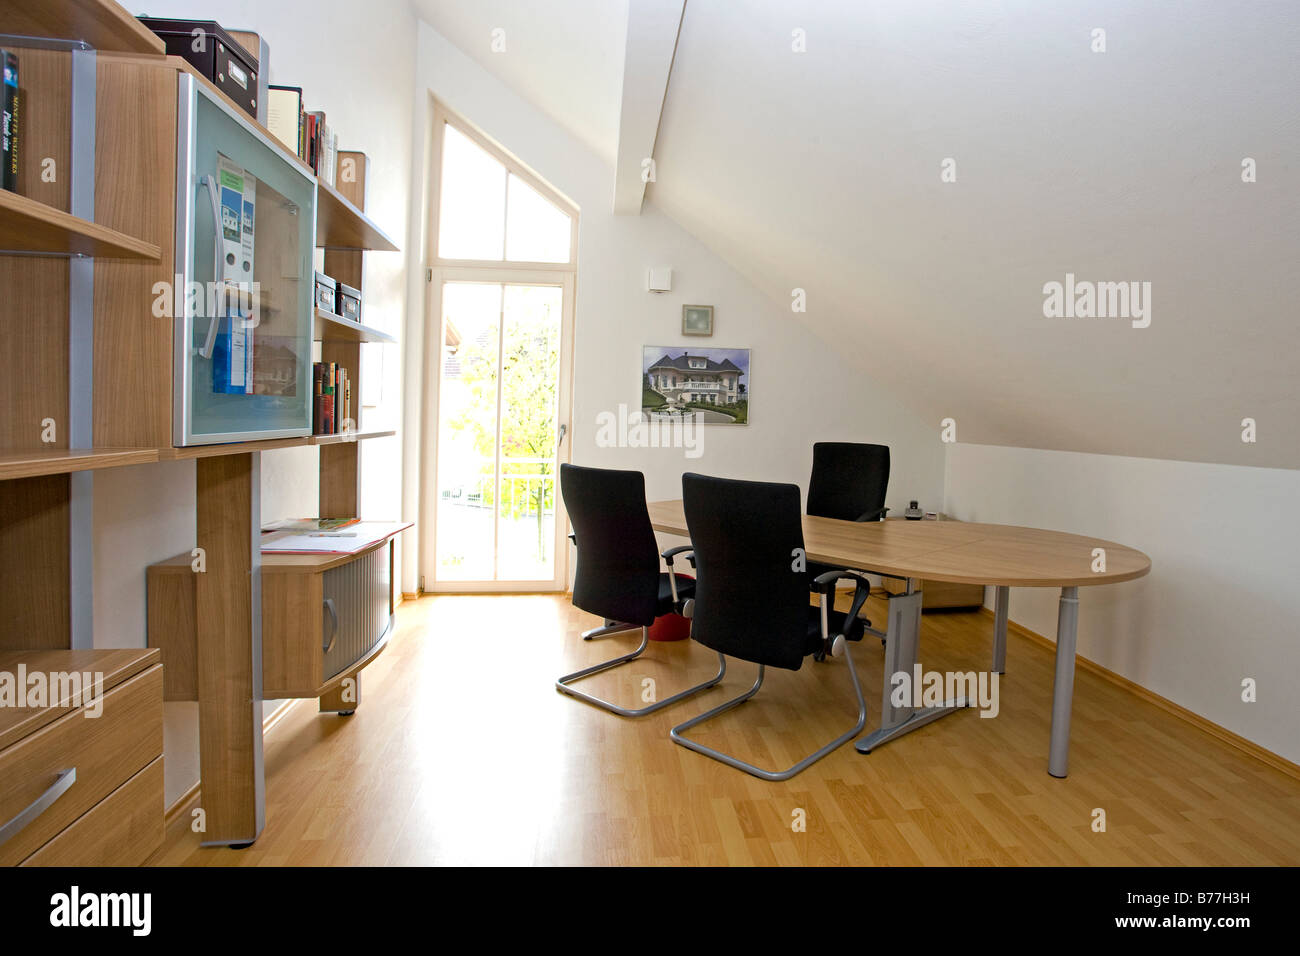 Arbeitszimmer design  Modernes Arbeitszimmer, modern workroom Stock Photo, Royalty Free ...